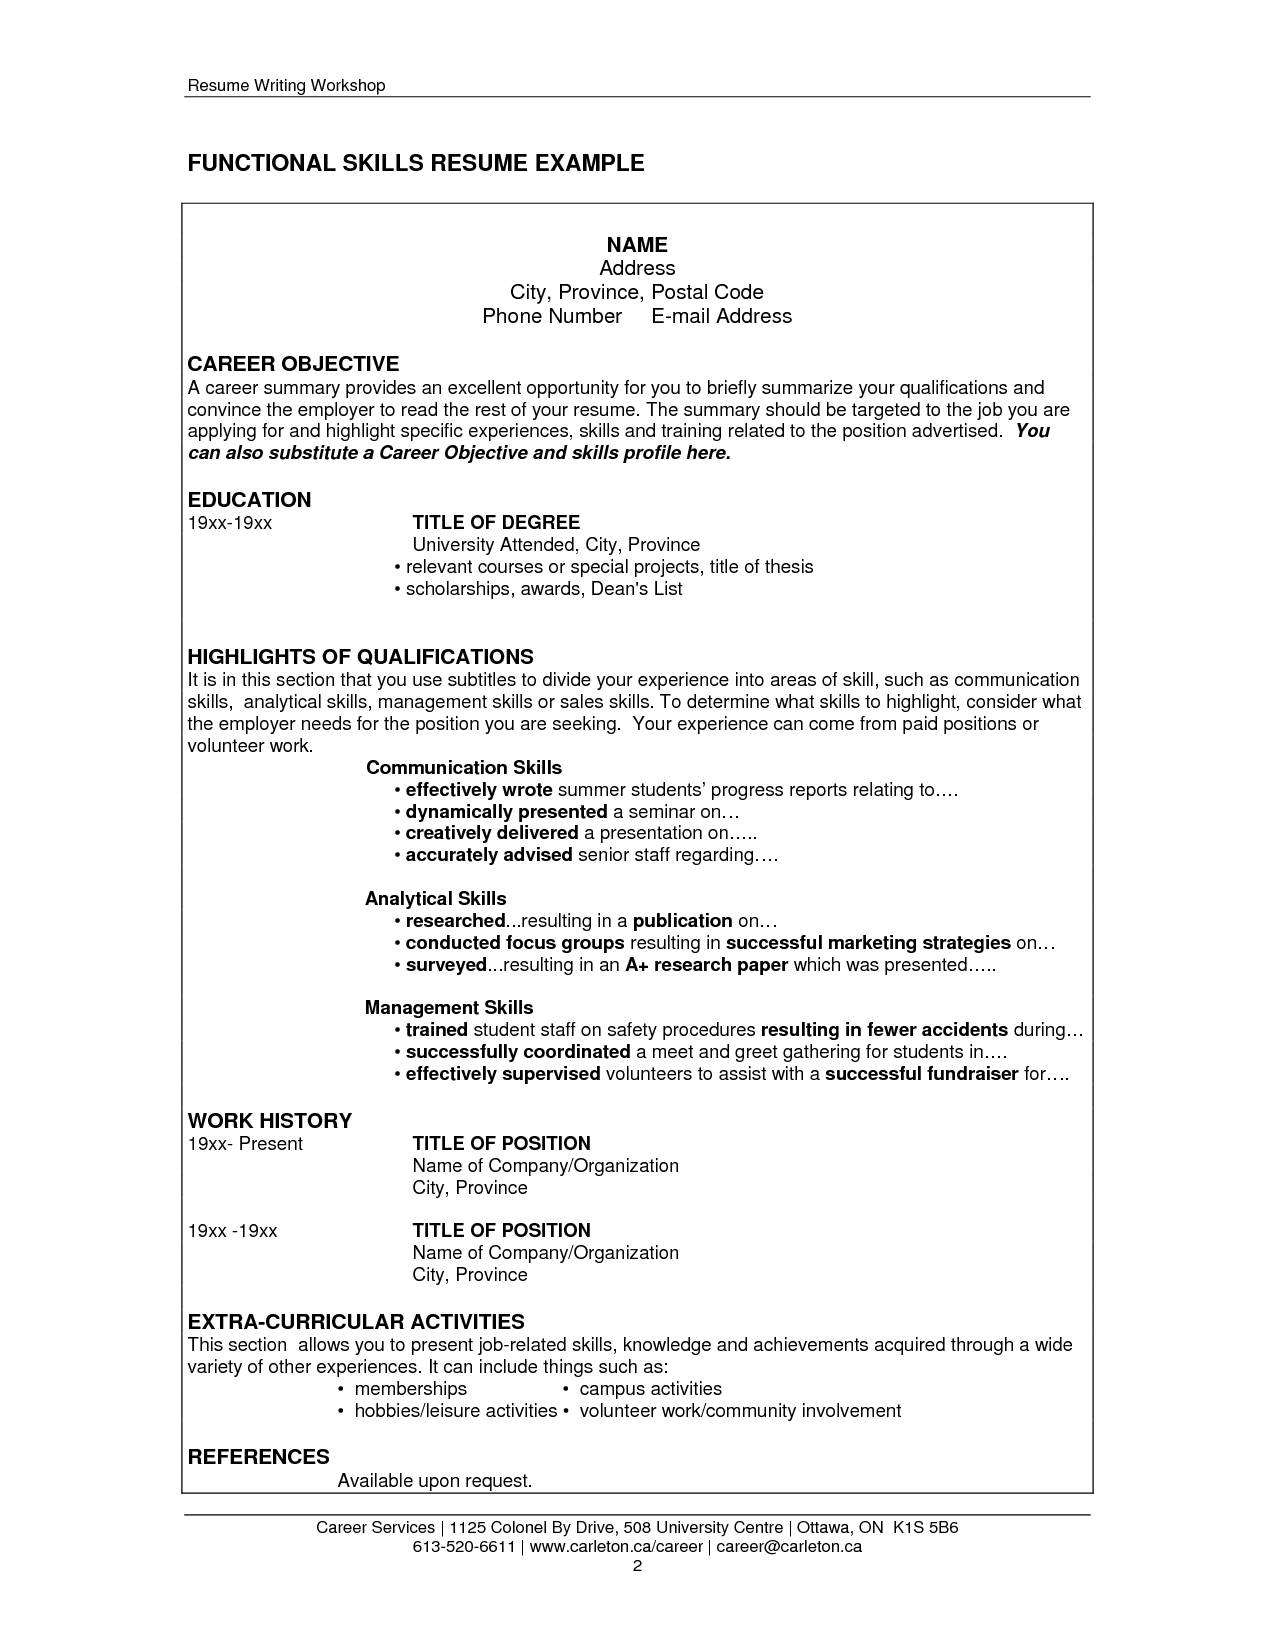 Skills On Good Resume Examples Resume Skills Resume Skills Section